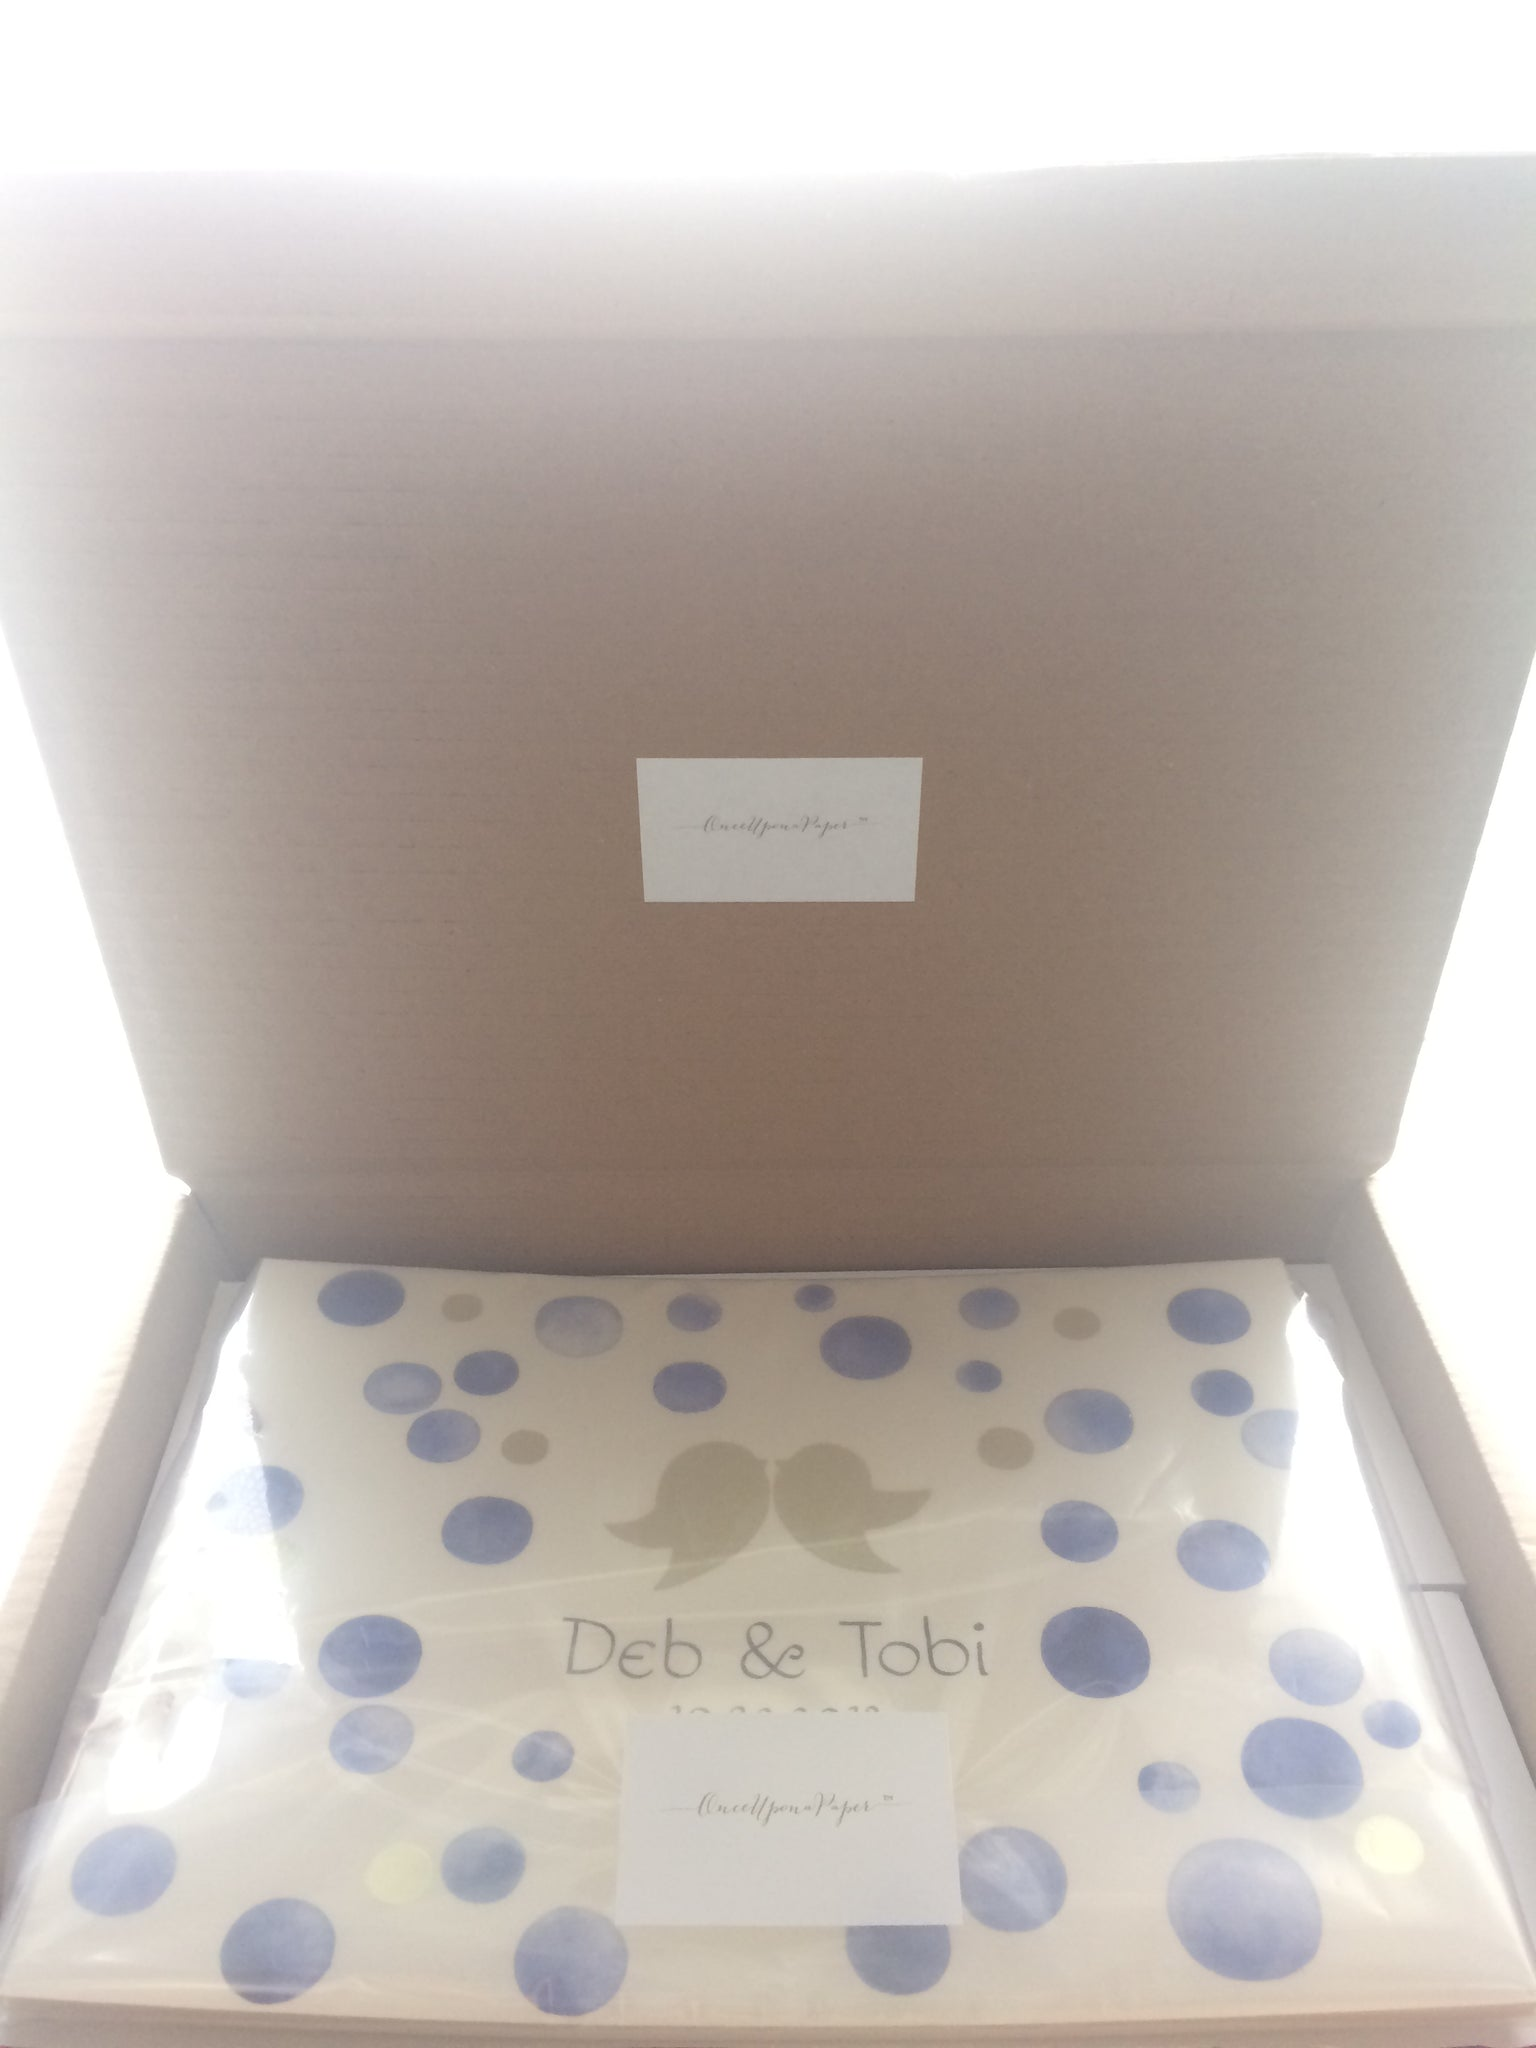 Packaging for a handpainted watercolor wedding album